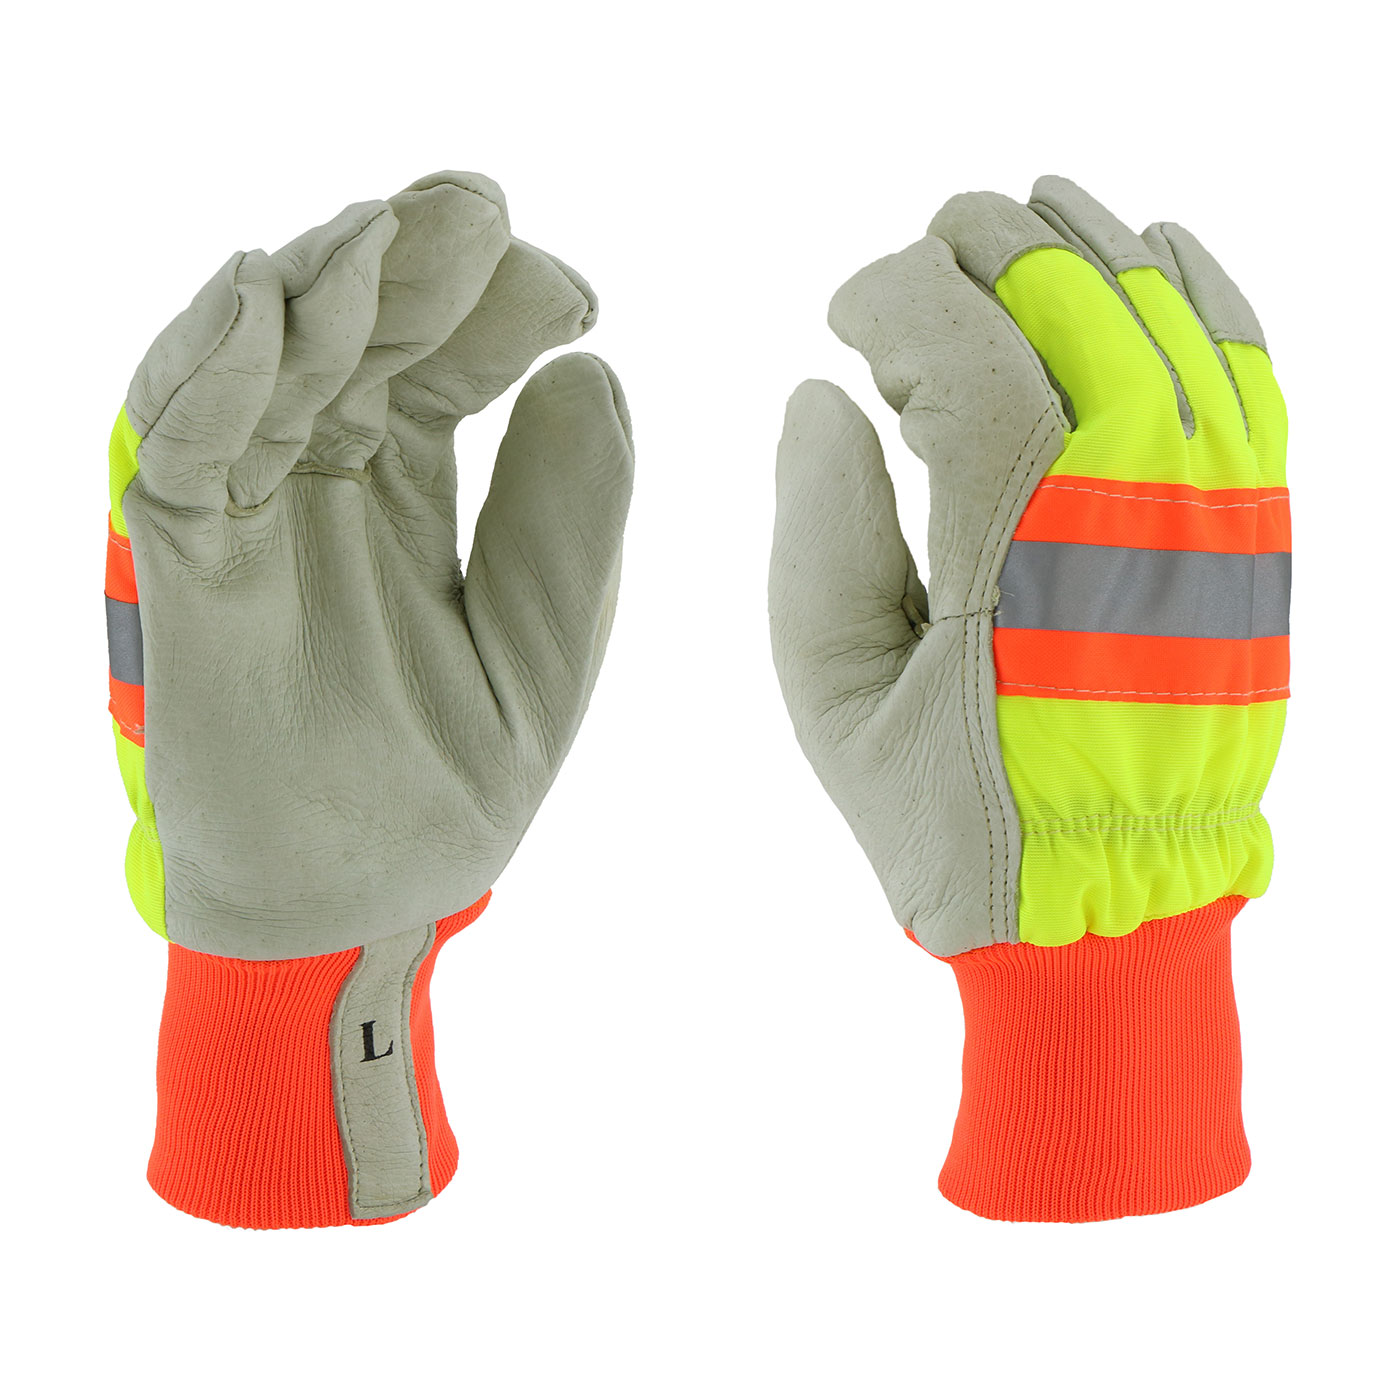 #HVY1555 PIP® West Chester Top Grain Pigskin Leather Palm Glove with Hi-Vis Nylon Back, Retro-Reflective Stripe, Posi-Therm® Liner and Knit Wrists